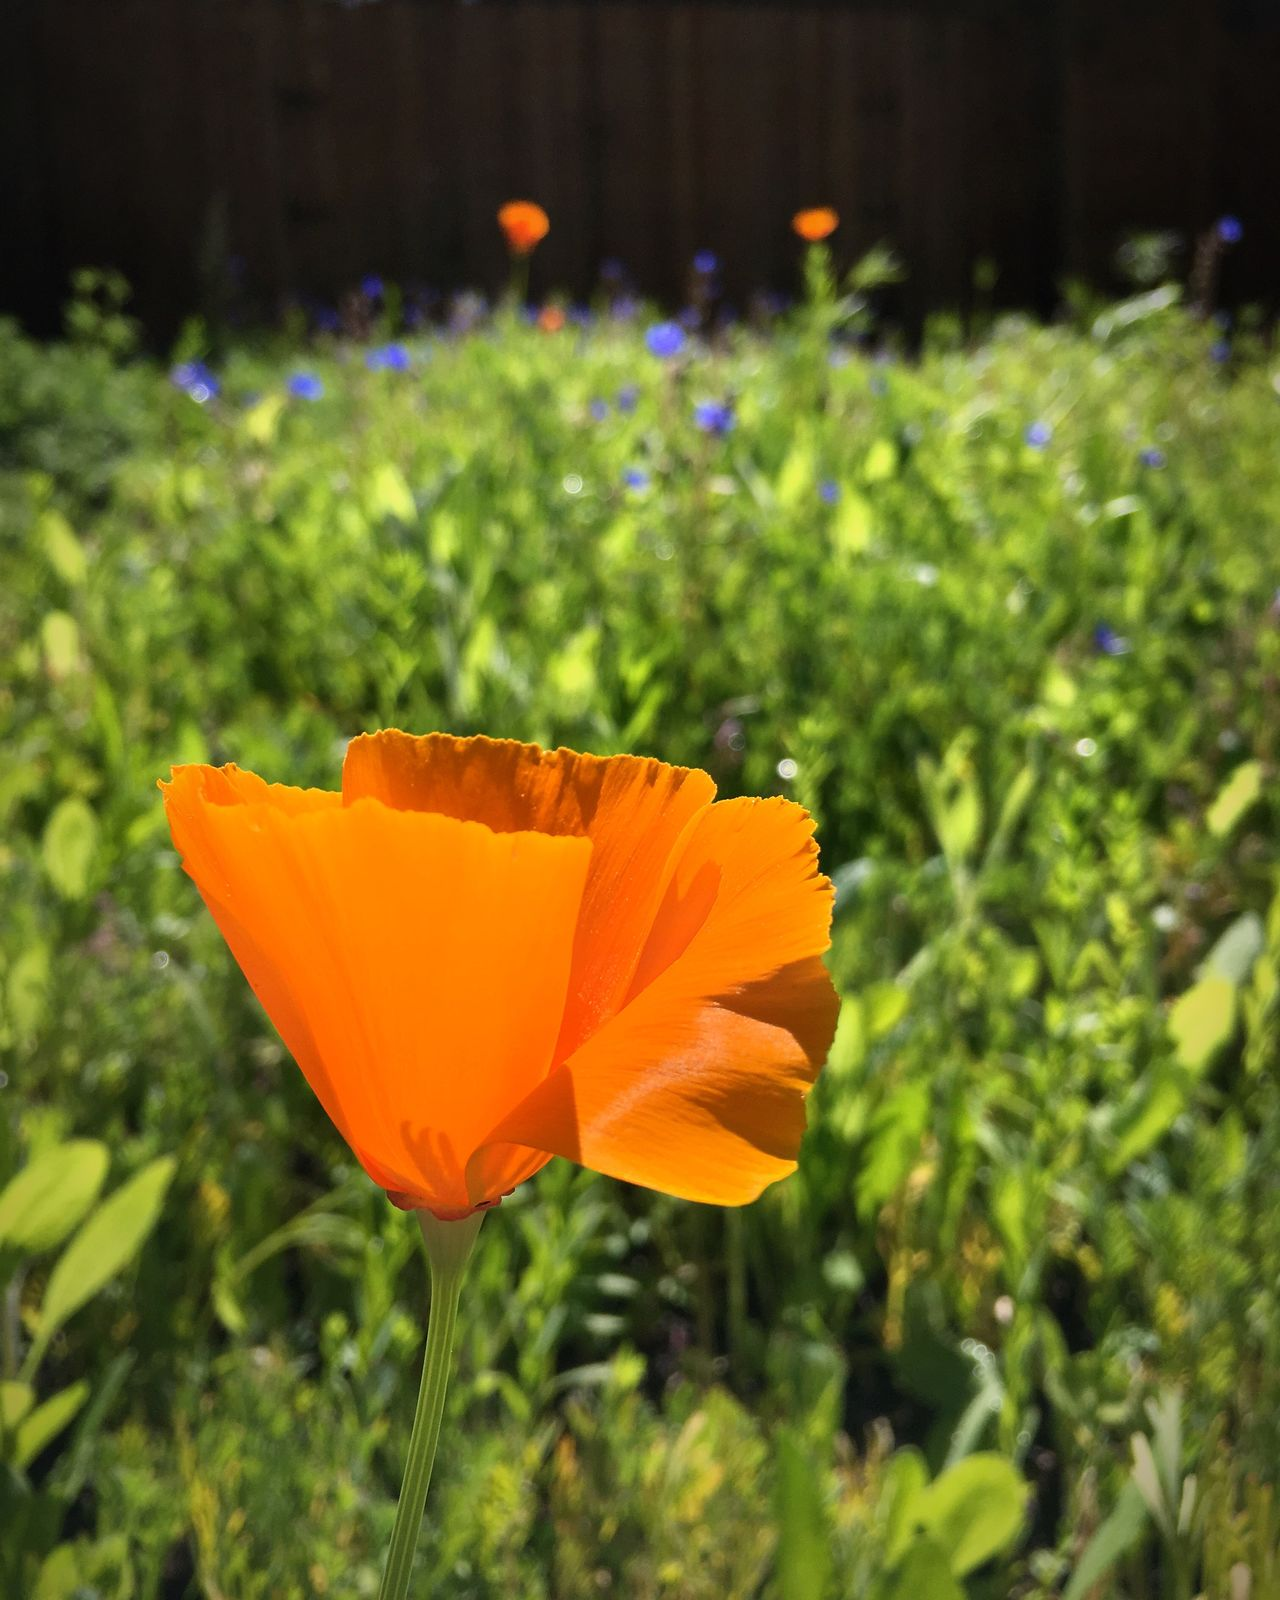 Poppy Flower California Poppy Orange Focus On Foreground Flowers Taking Photos Light Still Life Fence Yard California Focus EyeEm Best Shots Nature EyeEm Nature Lover Pollen Growing Growth Orange Flower The Great Outdoors - 2016 EyeEm Awards Nature People And Places